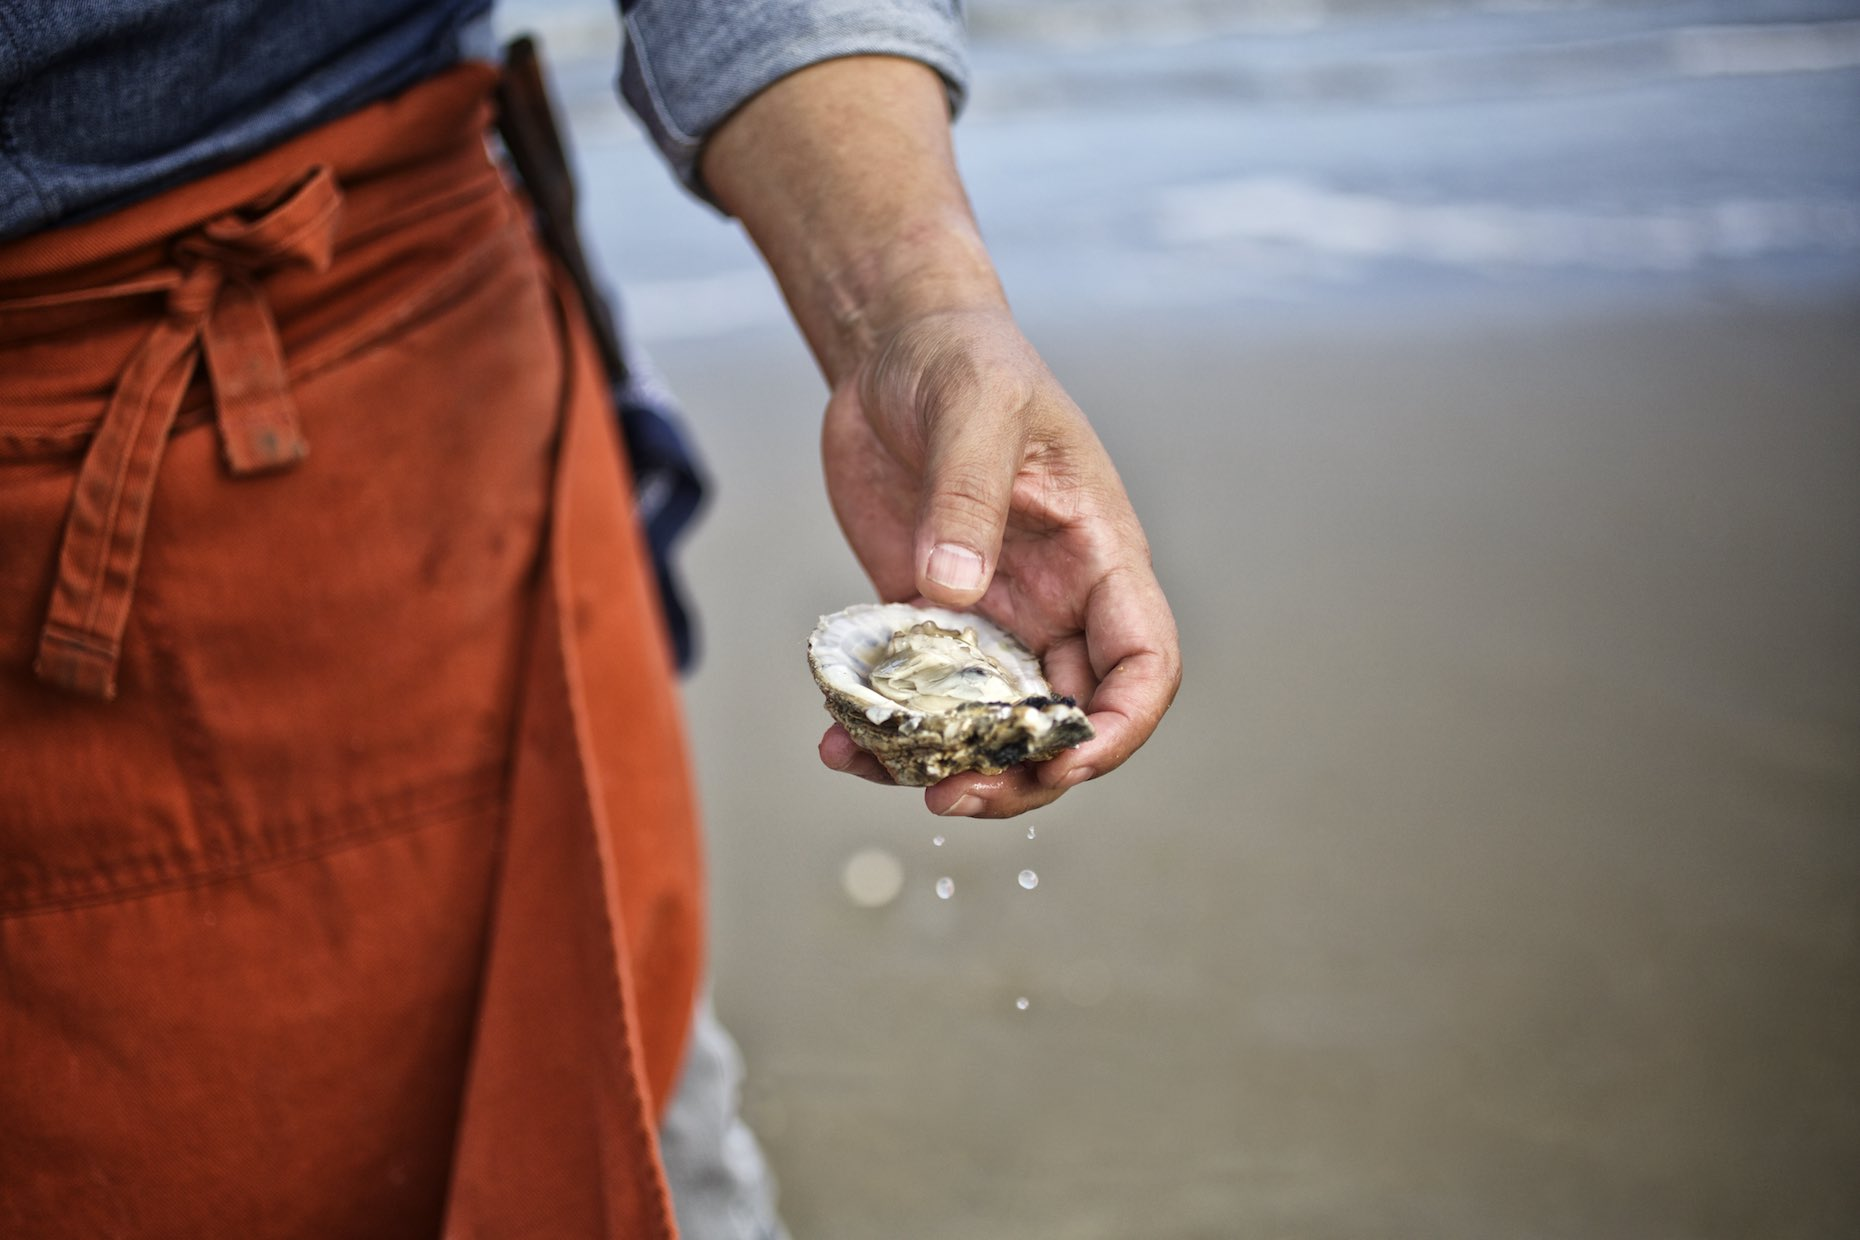 Hand holding a single oyster awash with sea water, on a sandy beach.